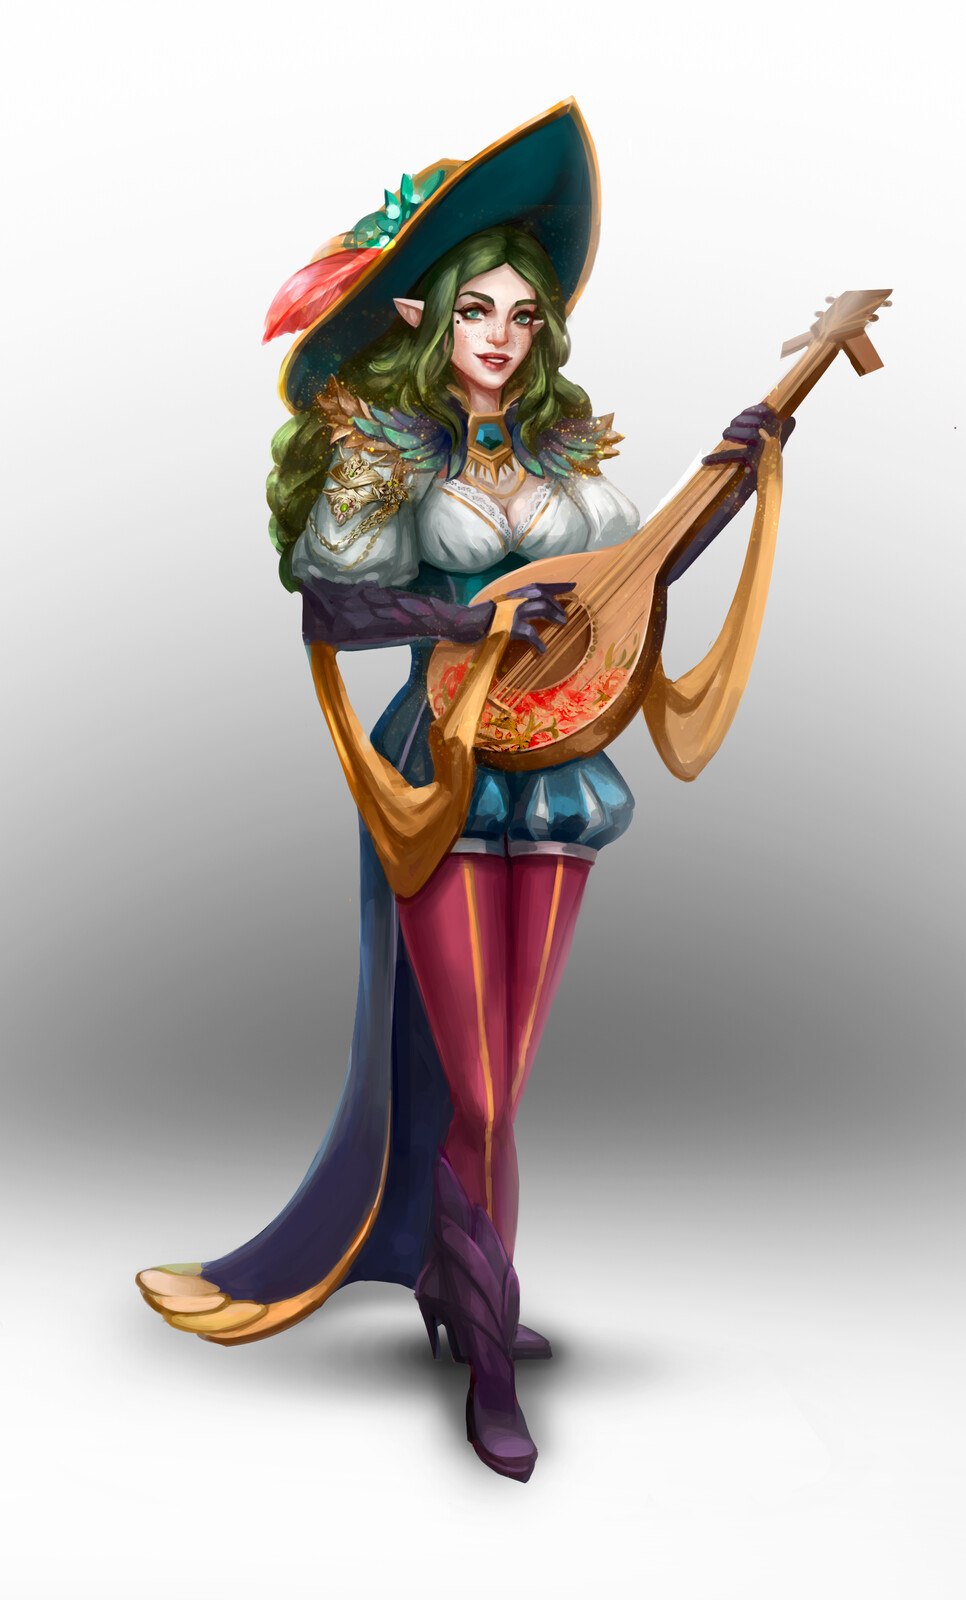 Marcia Ninfea, glamour bard (DnD character)